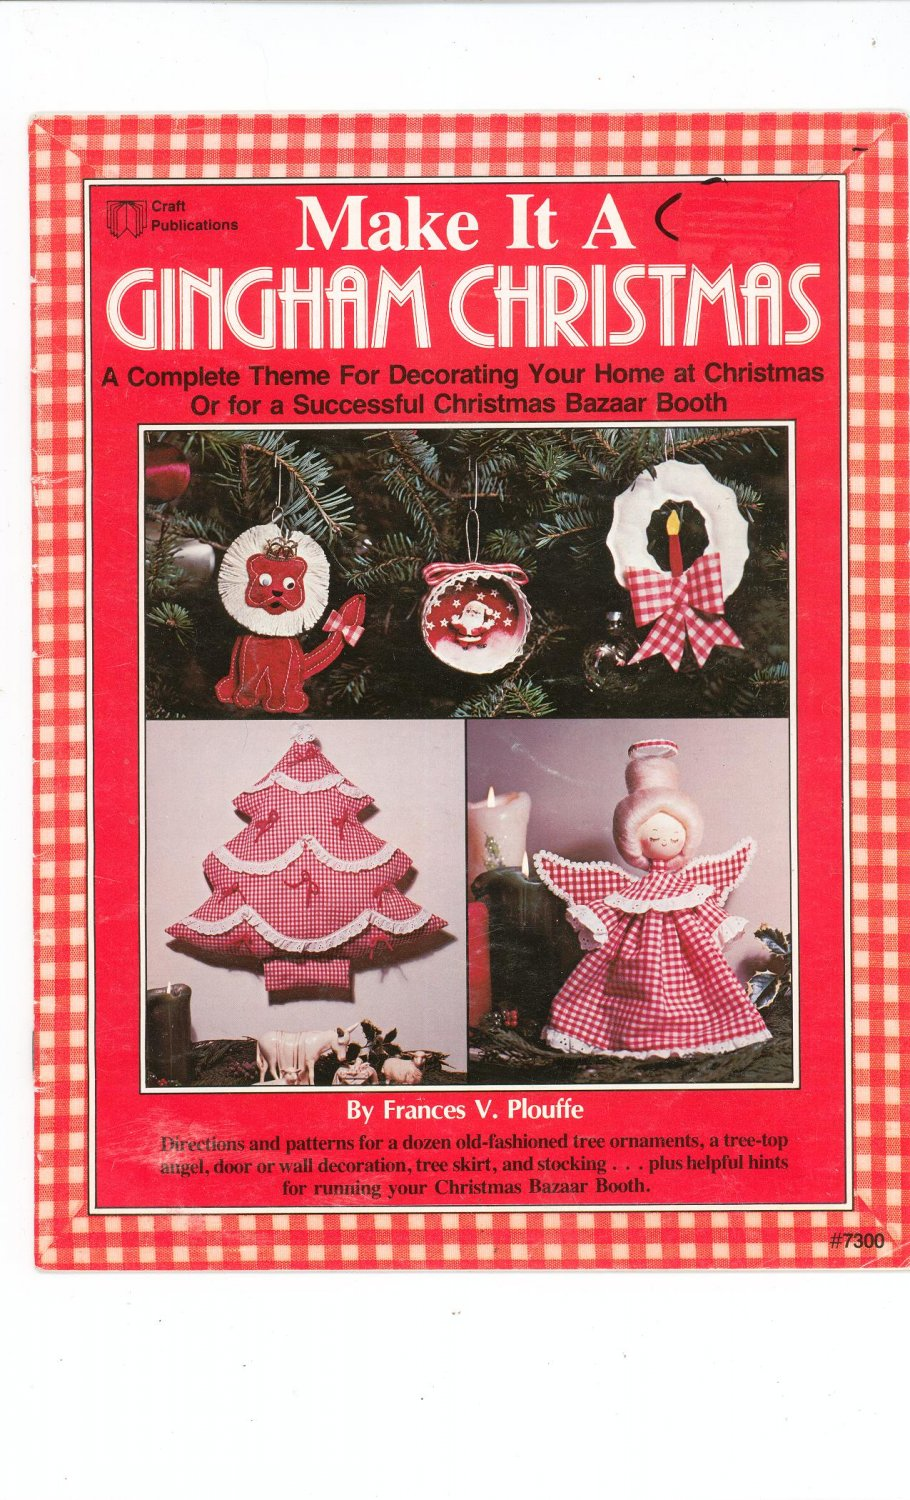 Make It A Craft Gingham Christmas by Frances V. Plouffe # 7300 Vintage 1979